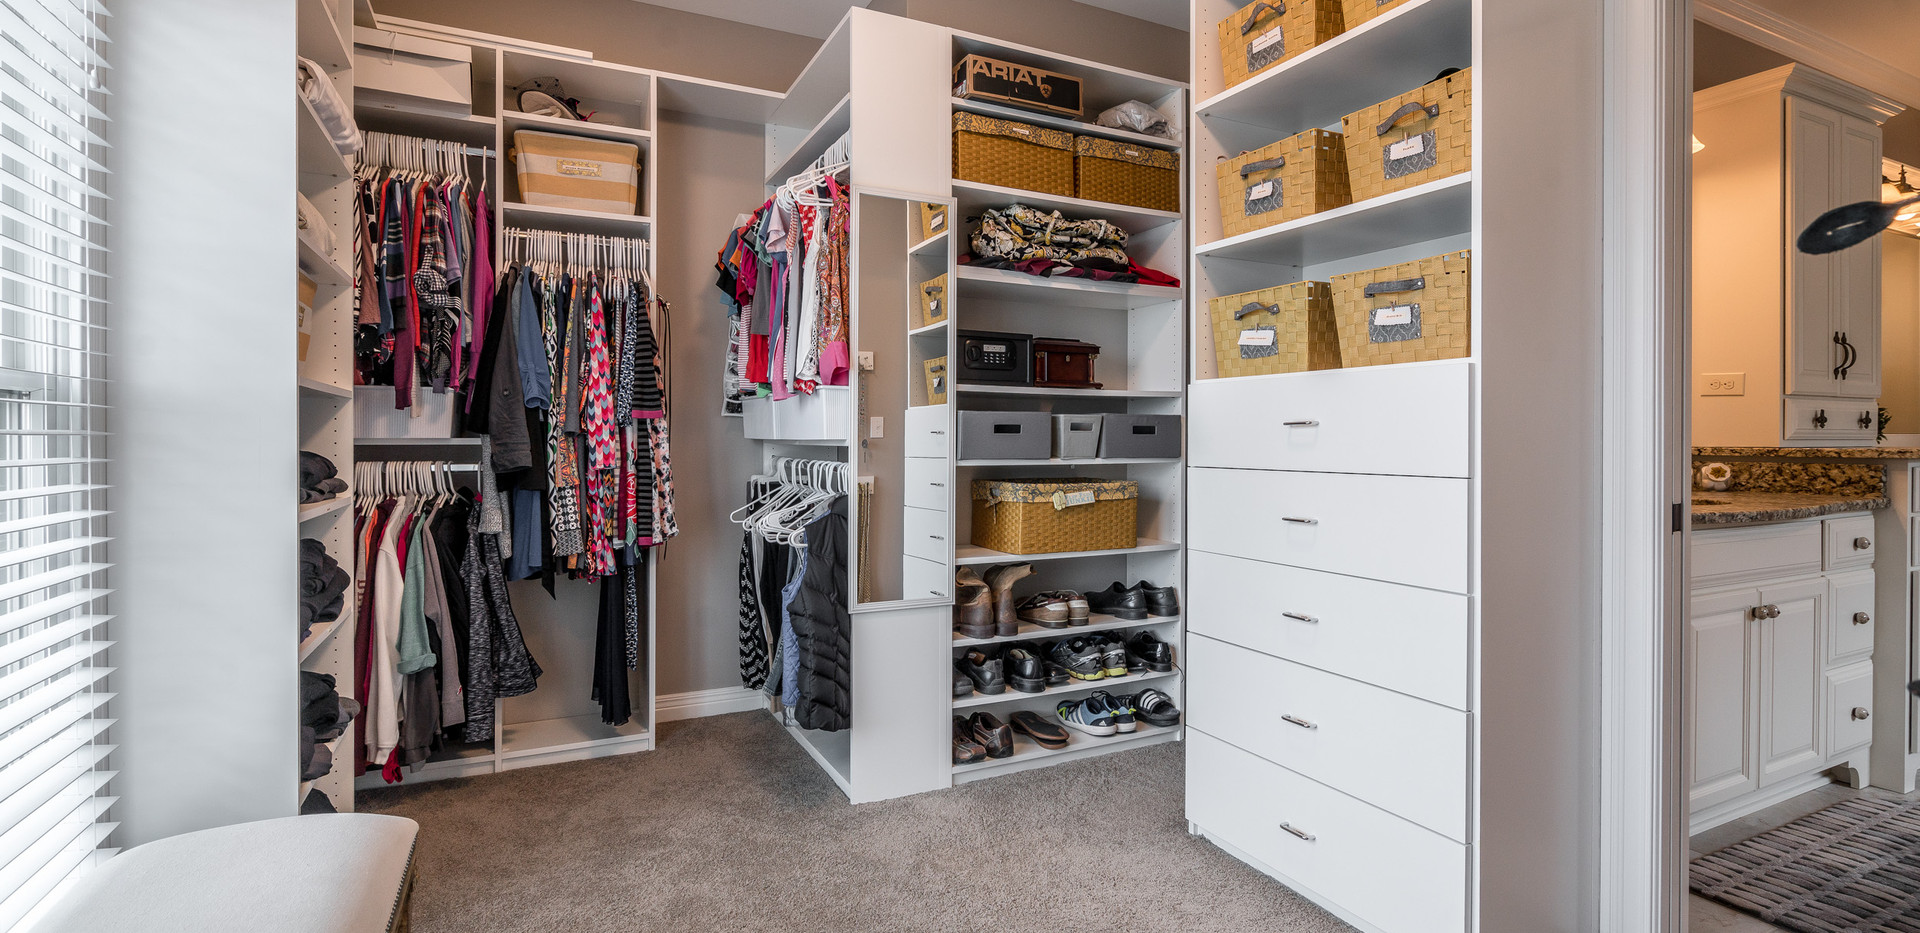 Custom closet design by Closets By Design makes this closet feel like your own store to select your clothing ensemble each day.